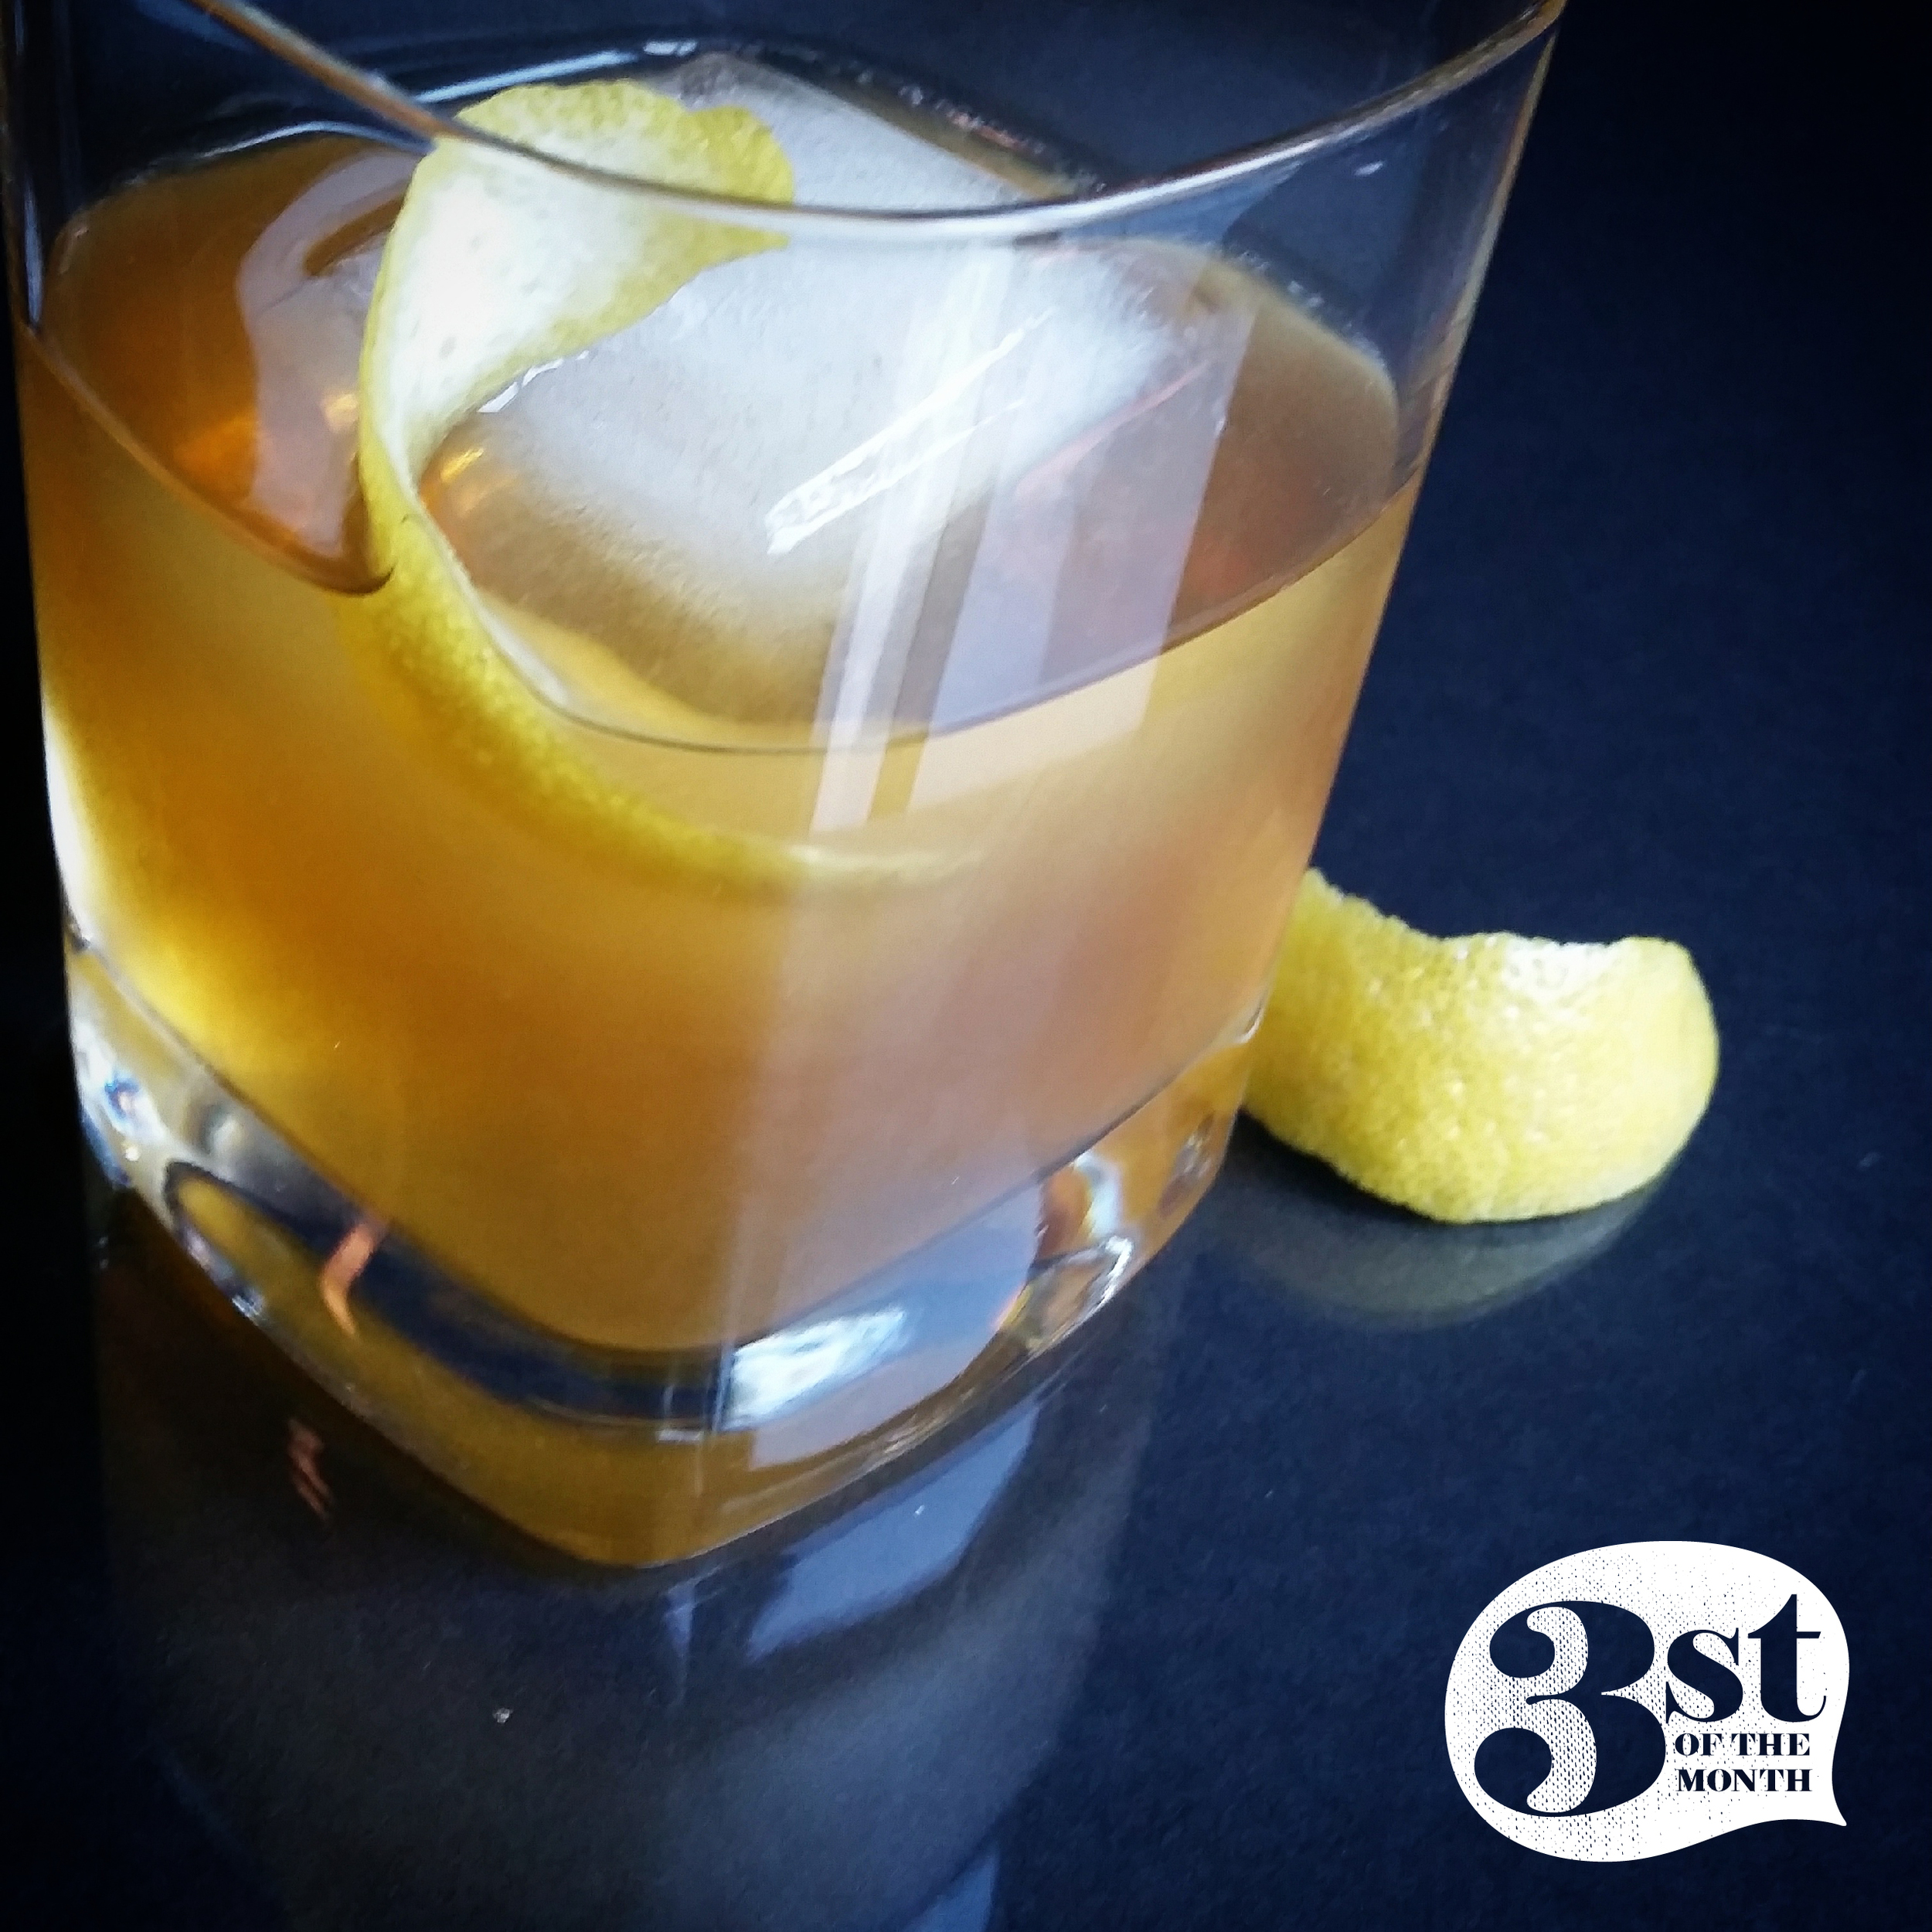 3st of the Month presents: the Demonbreun Hill - a boozy single malt cocktail enhanced with gomme syrup